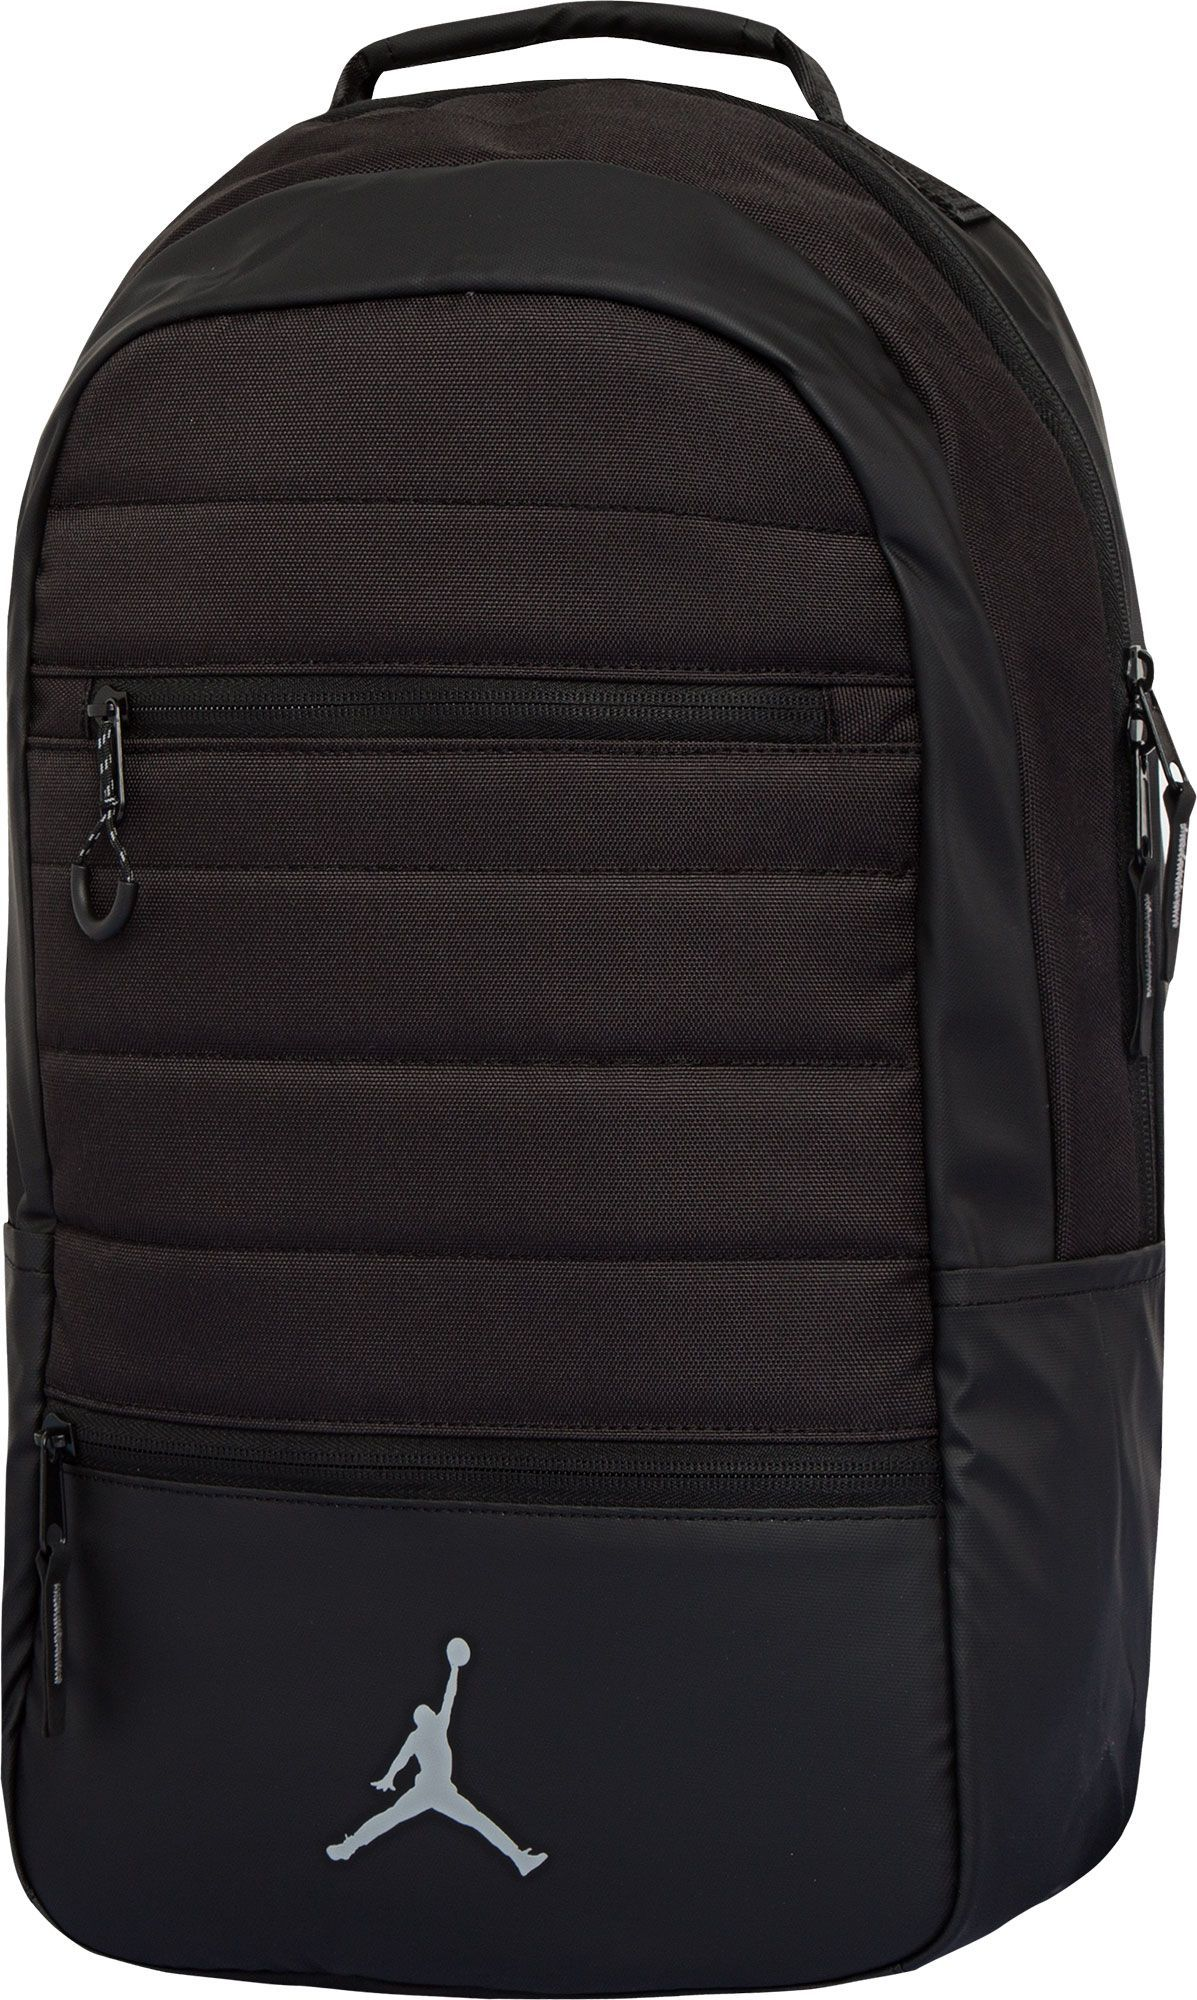 283760c80c8703 Jordan Airborne Backpack in 2019